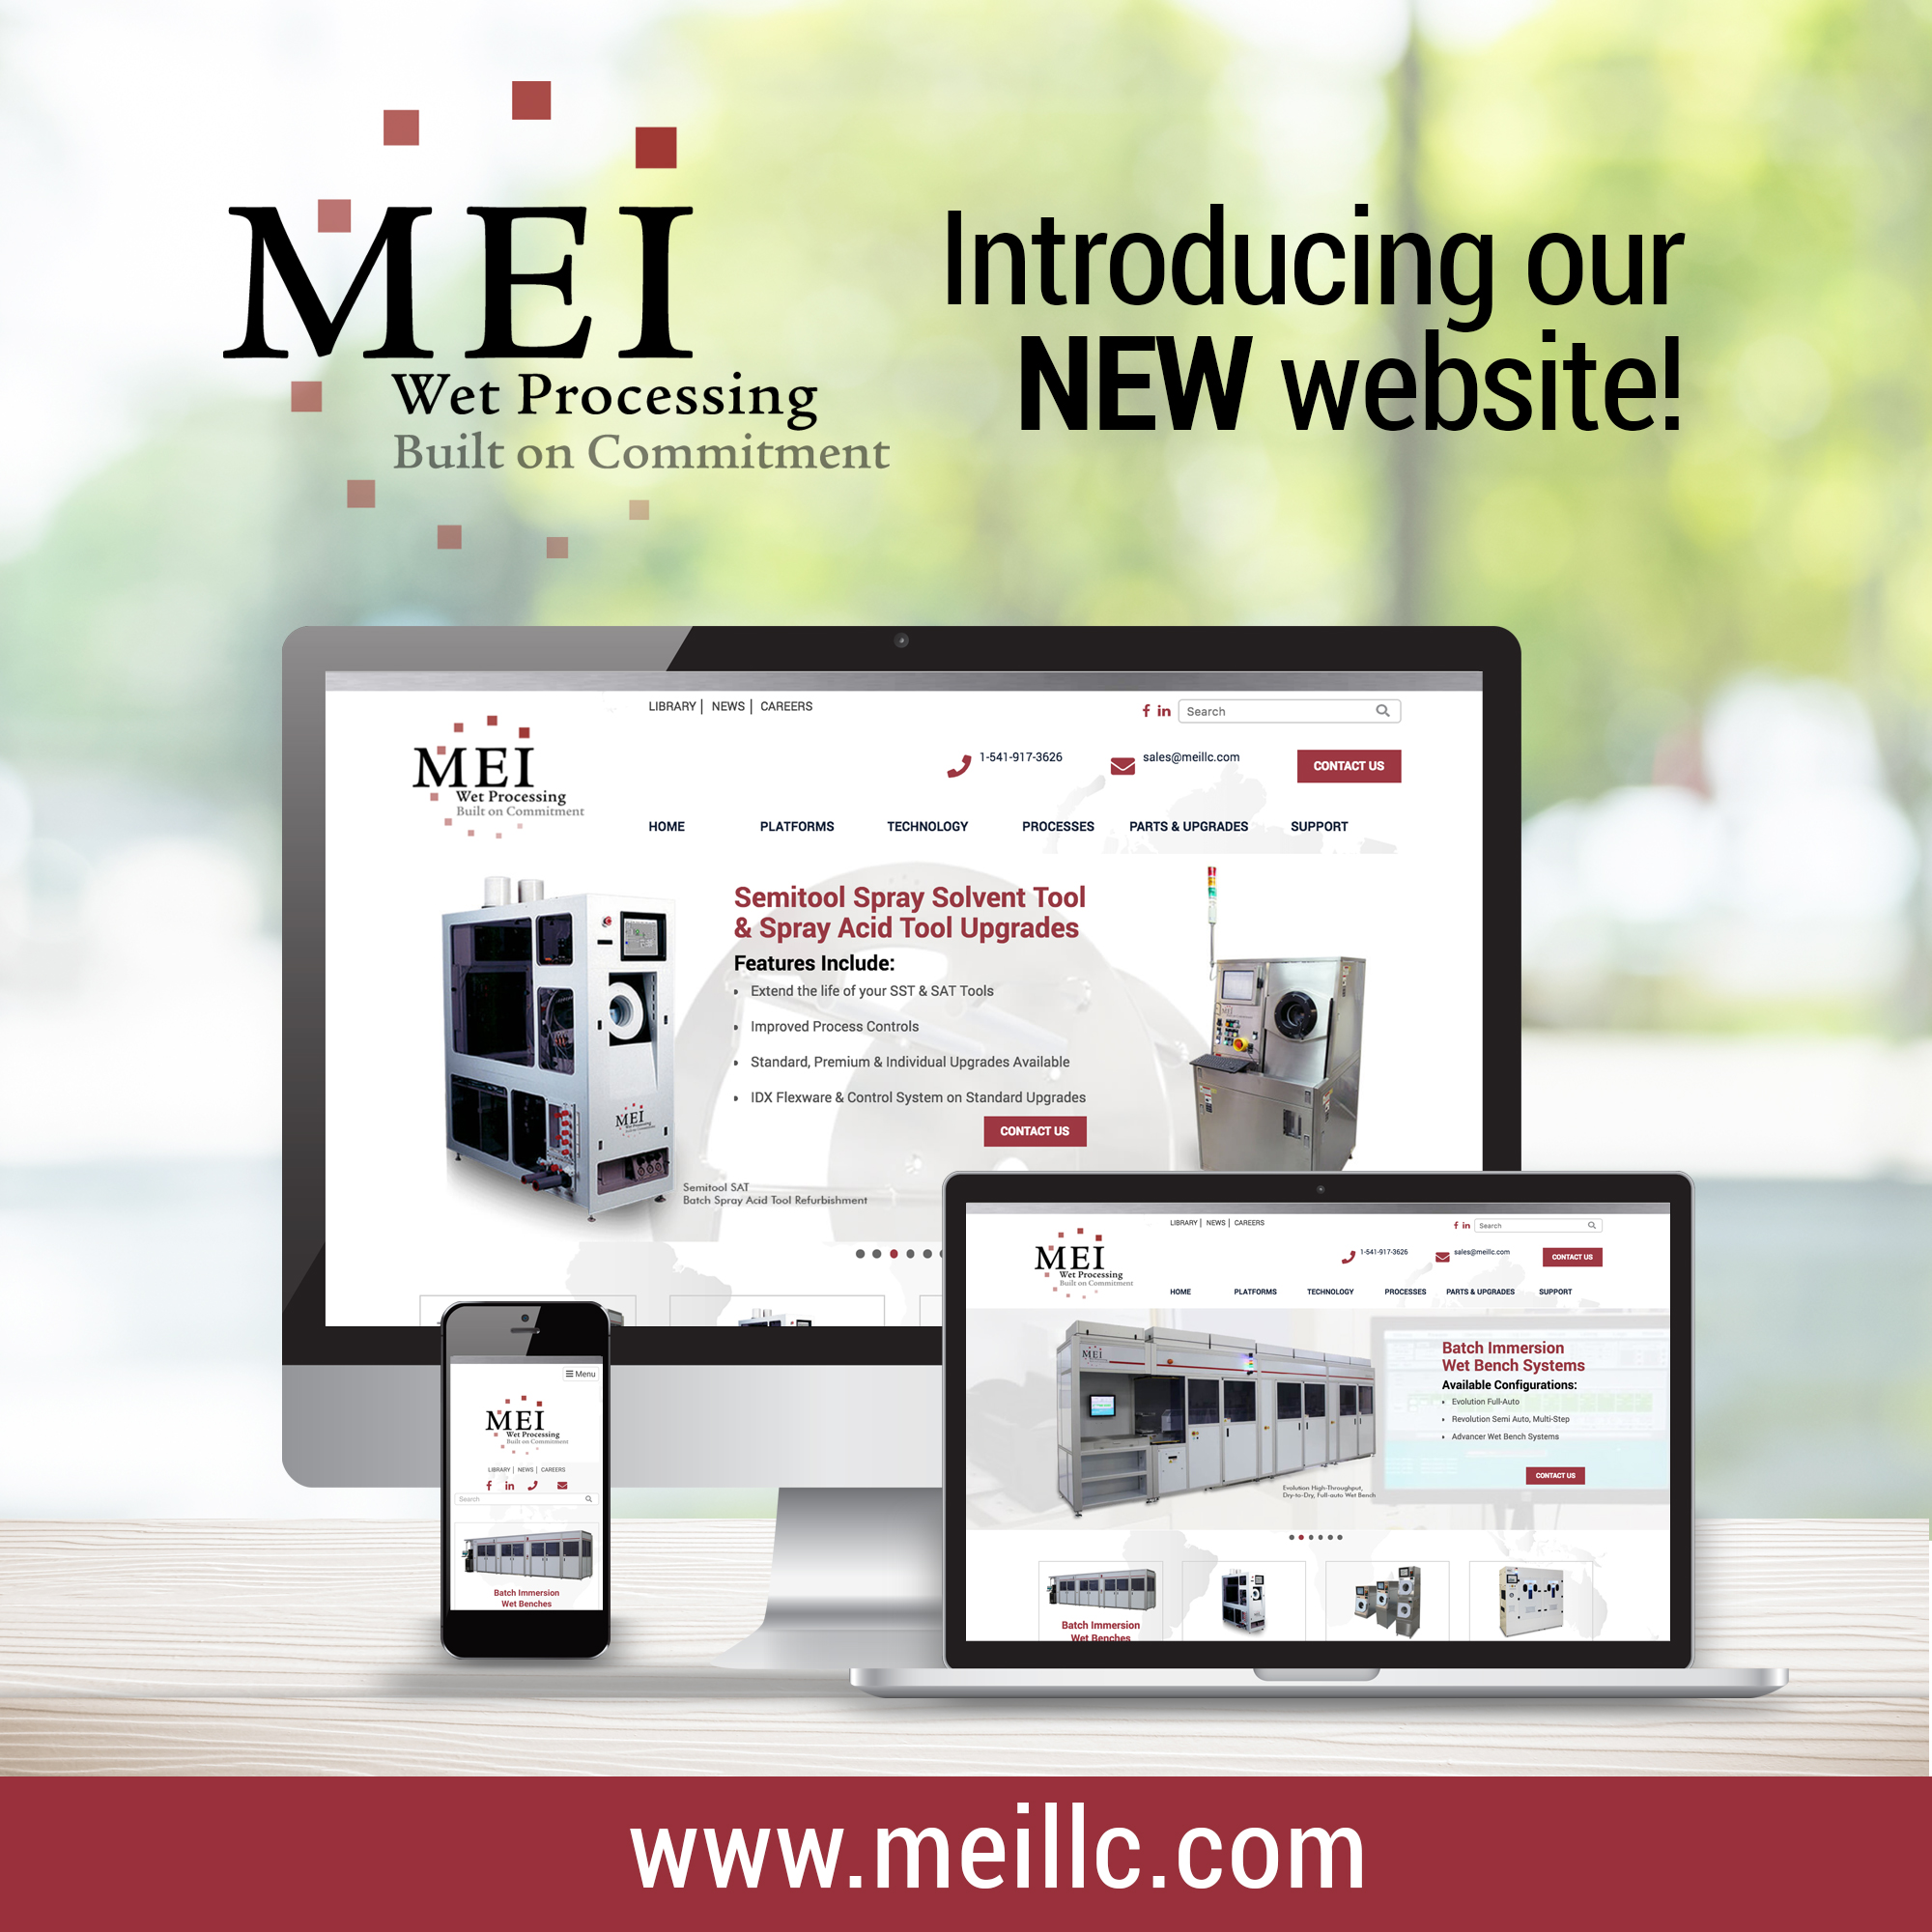 MEI WET PROCESSING ANNOUNCES NEW WEBSITE LAUNCH